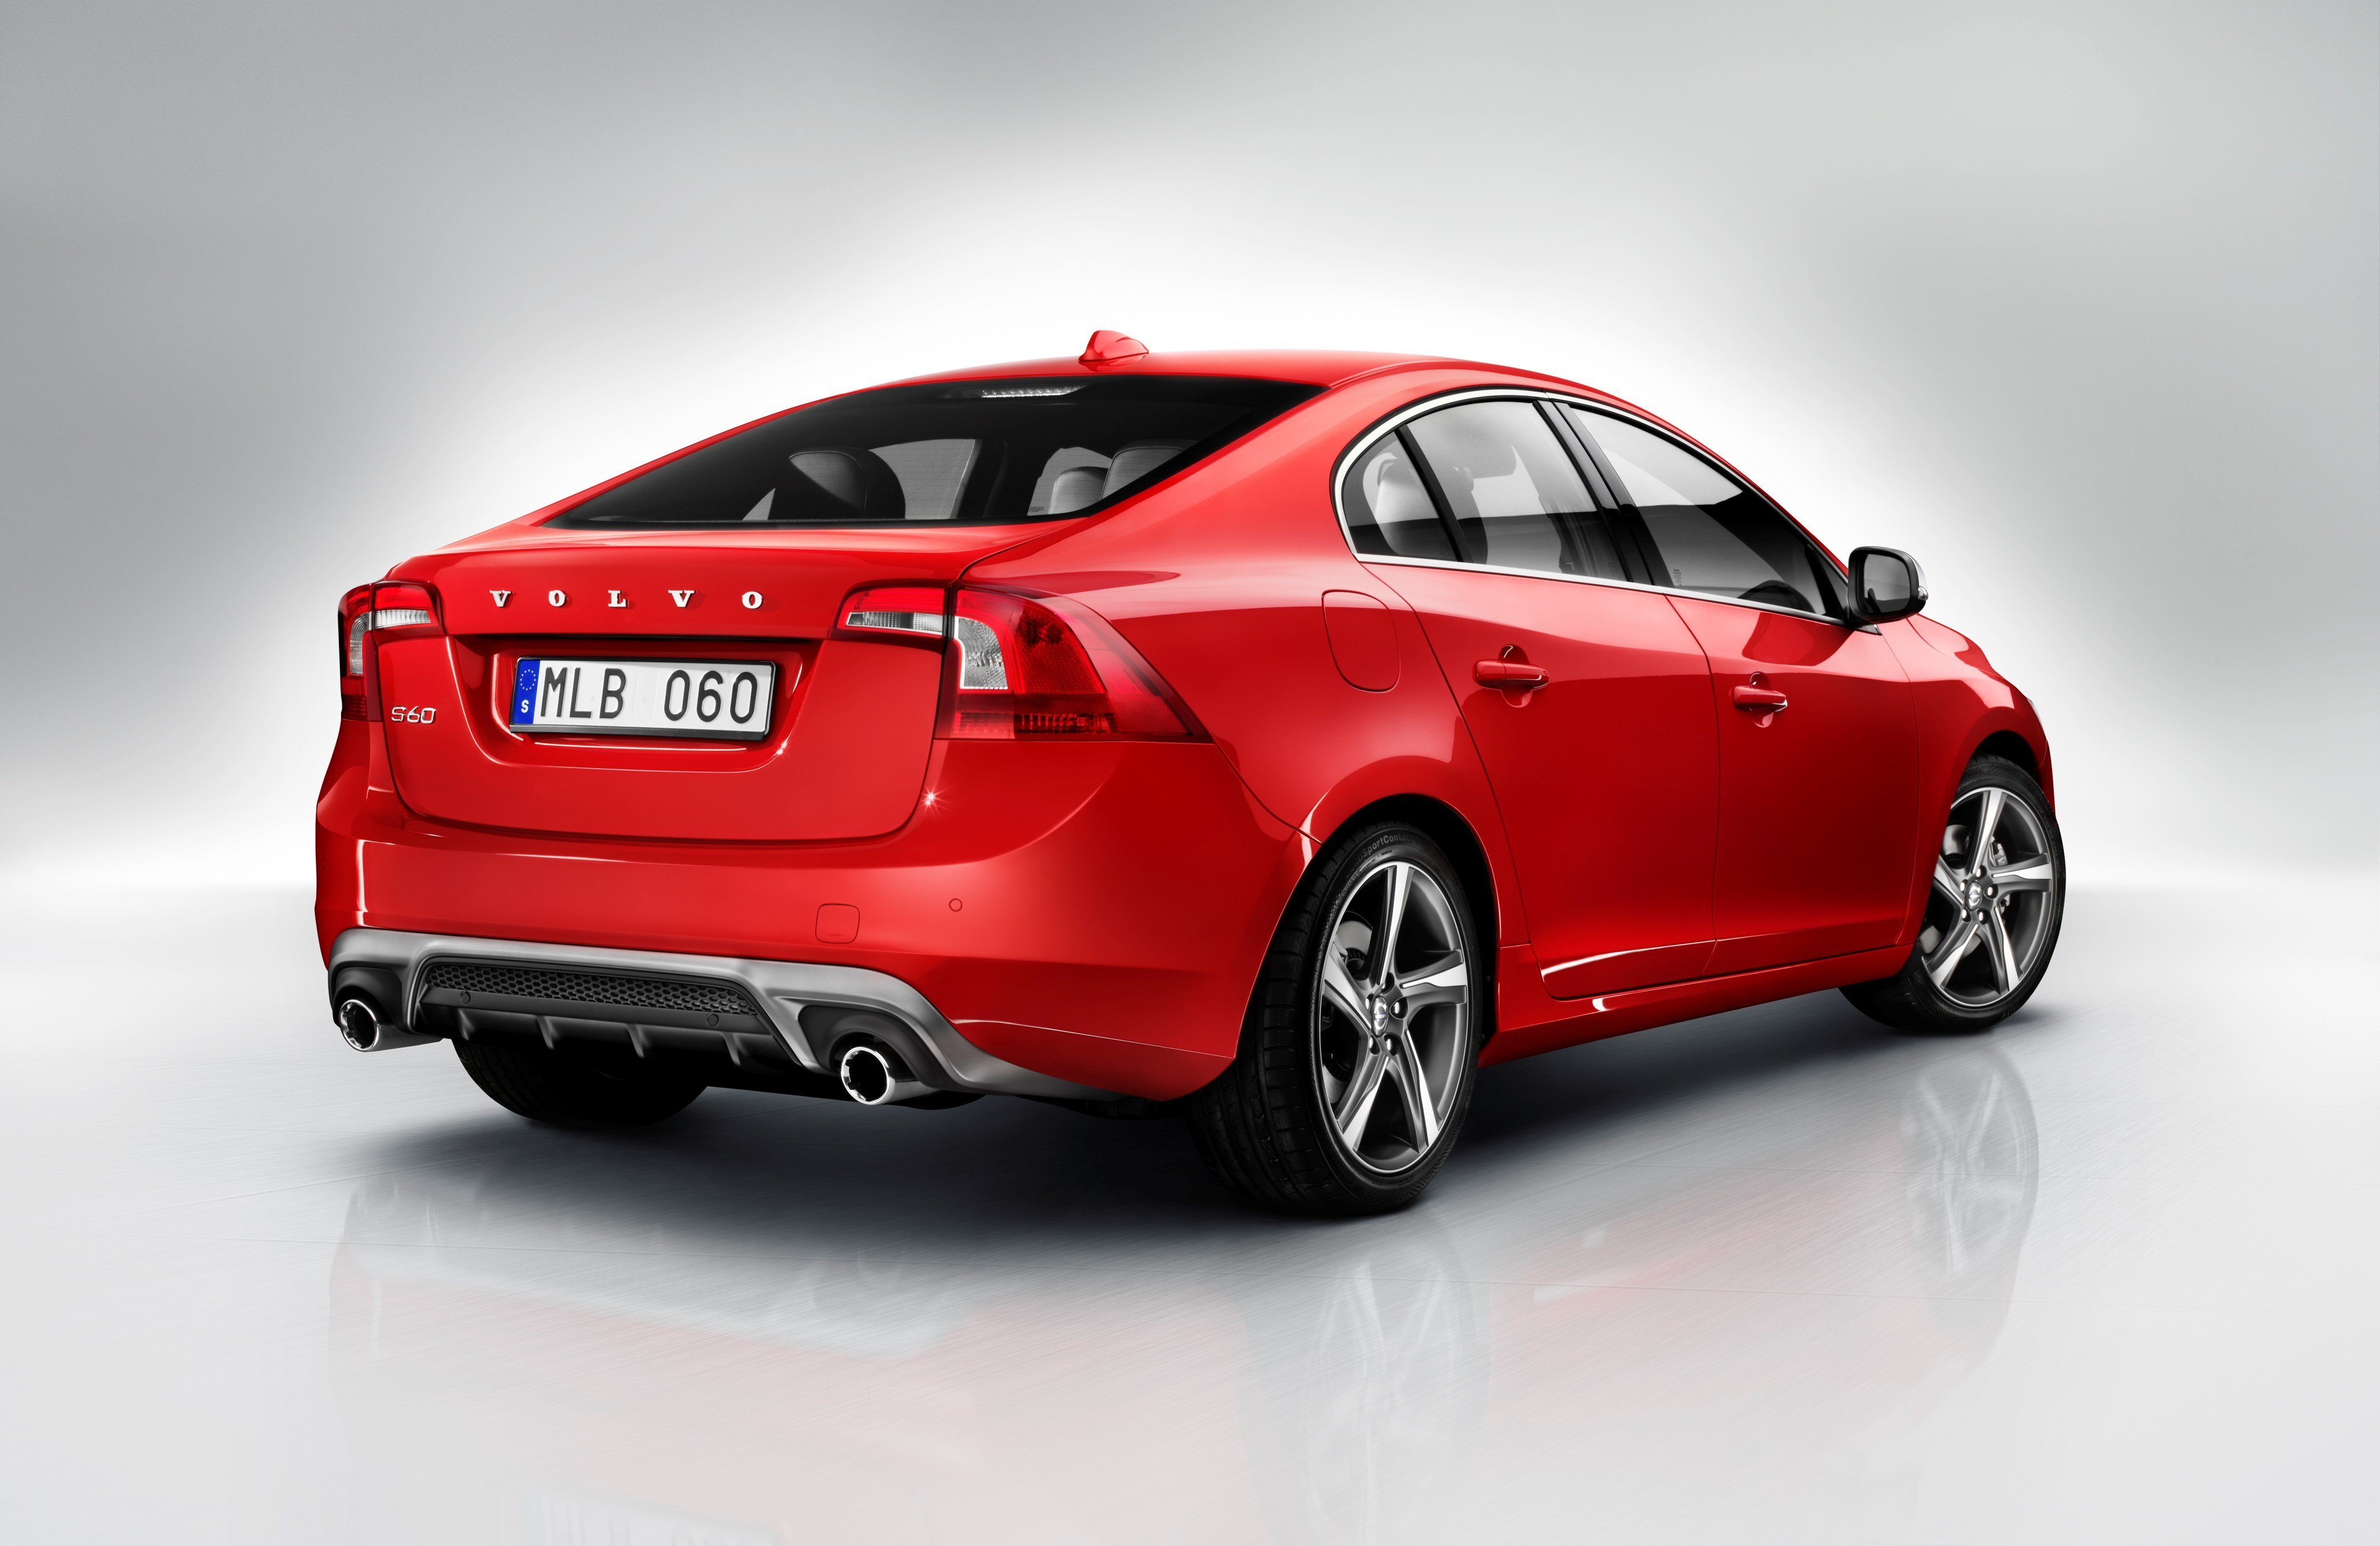 New Volvo Cars S60 28 Free Car Hd Wallpaper On This Month